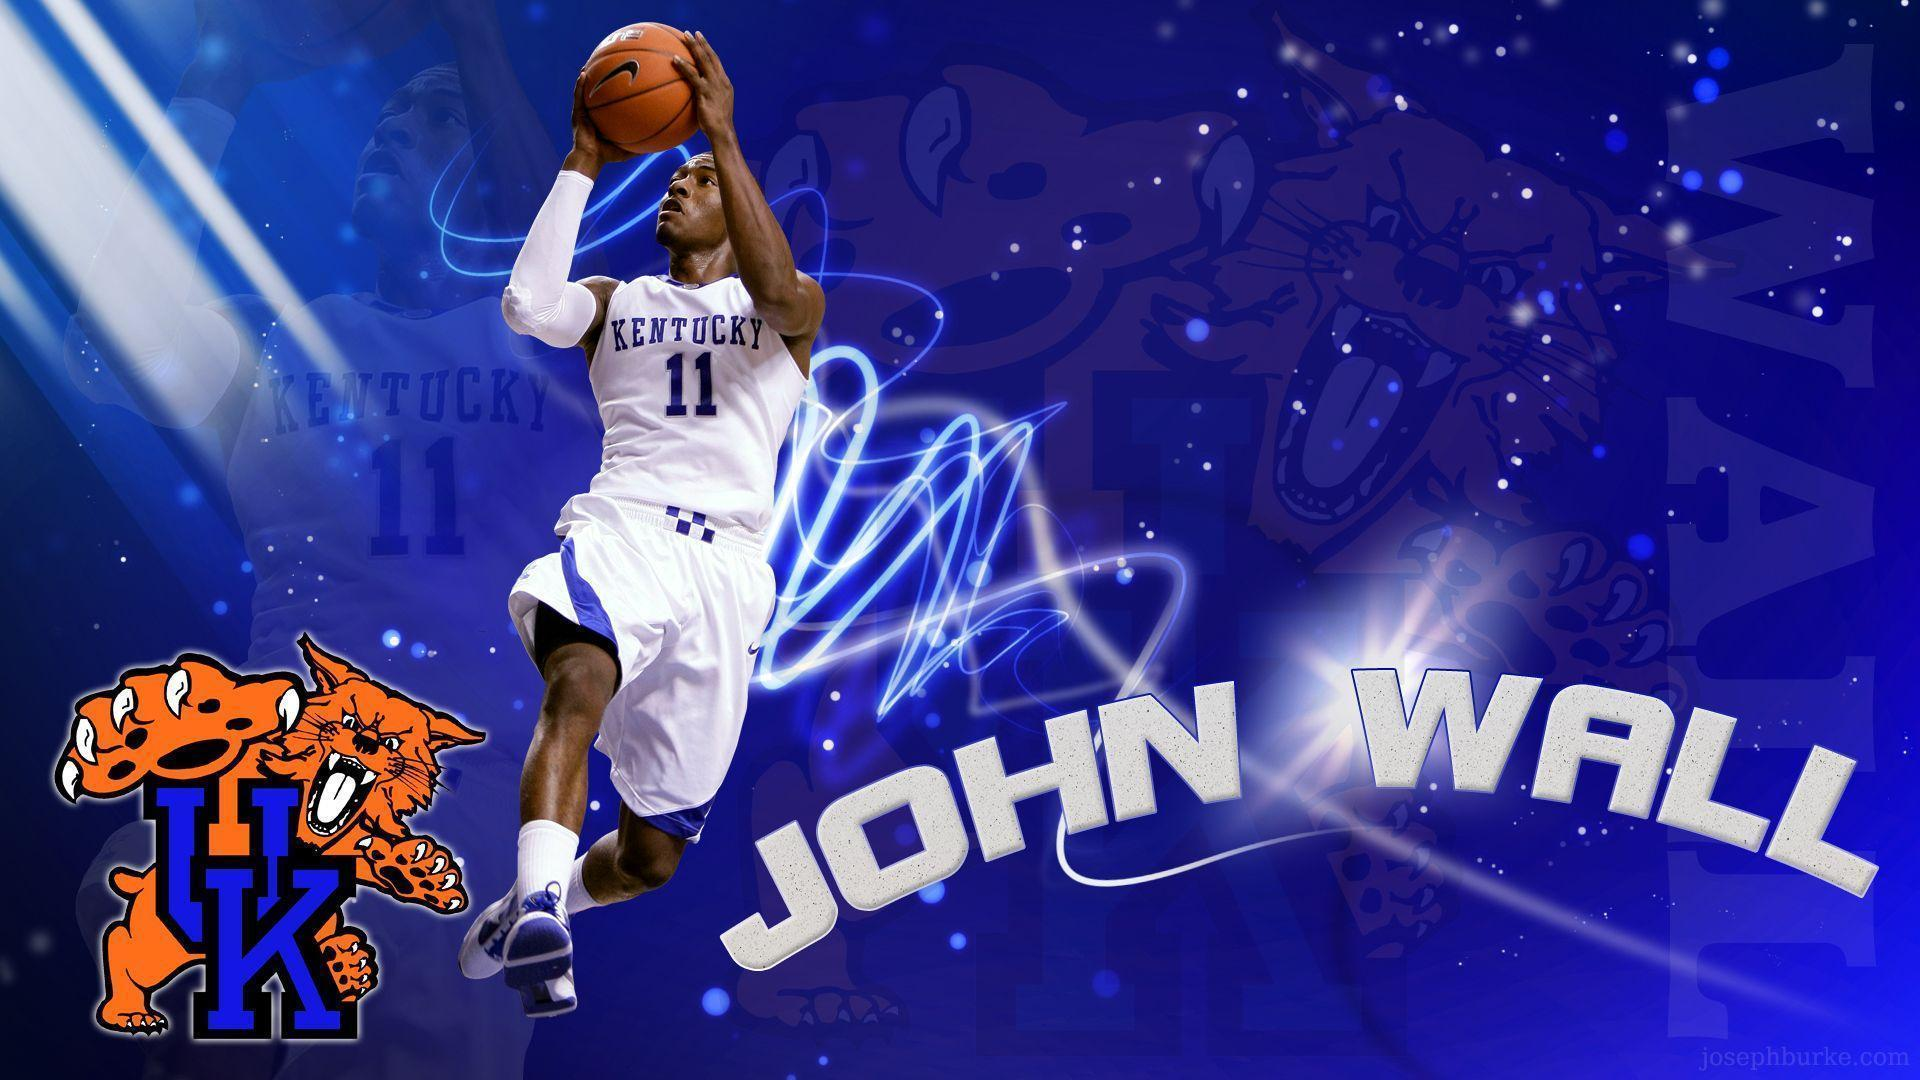 Wallpapers Basketball Kentucky John Wall 1920x1080 | #1099555 ...